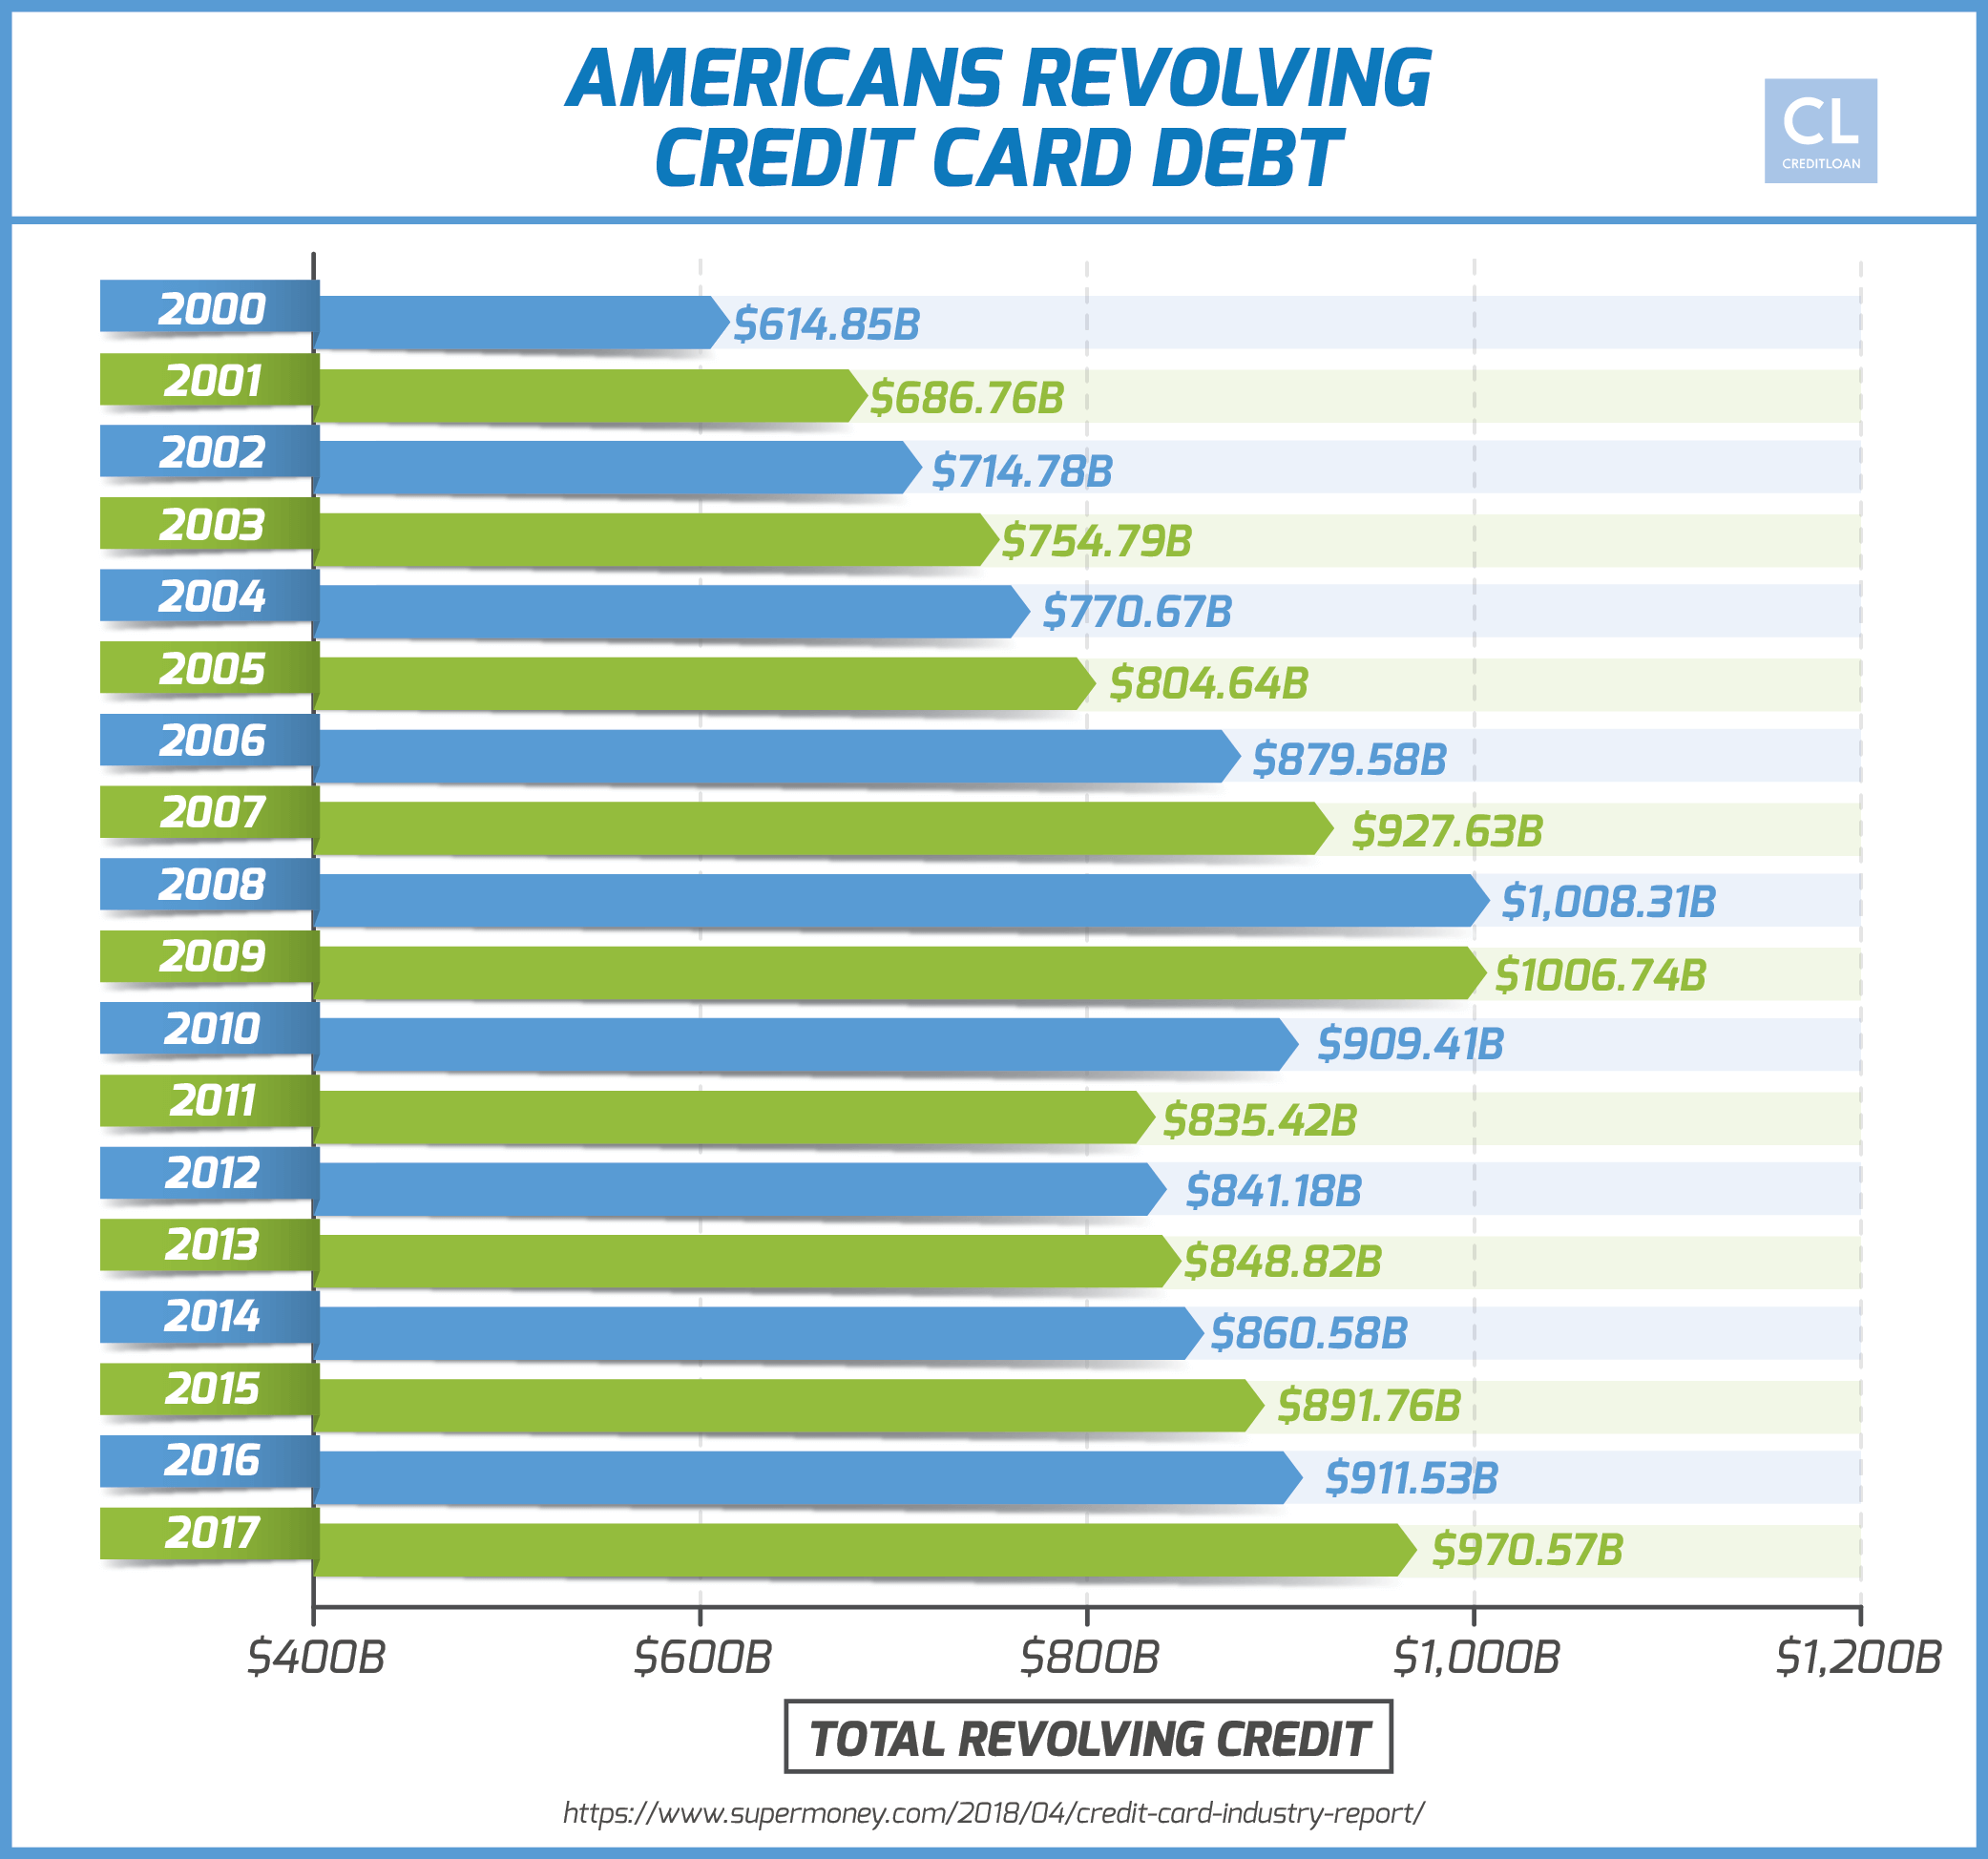 Americans Revolving Credit Card Debt from 2000-2017